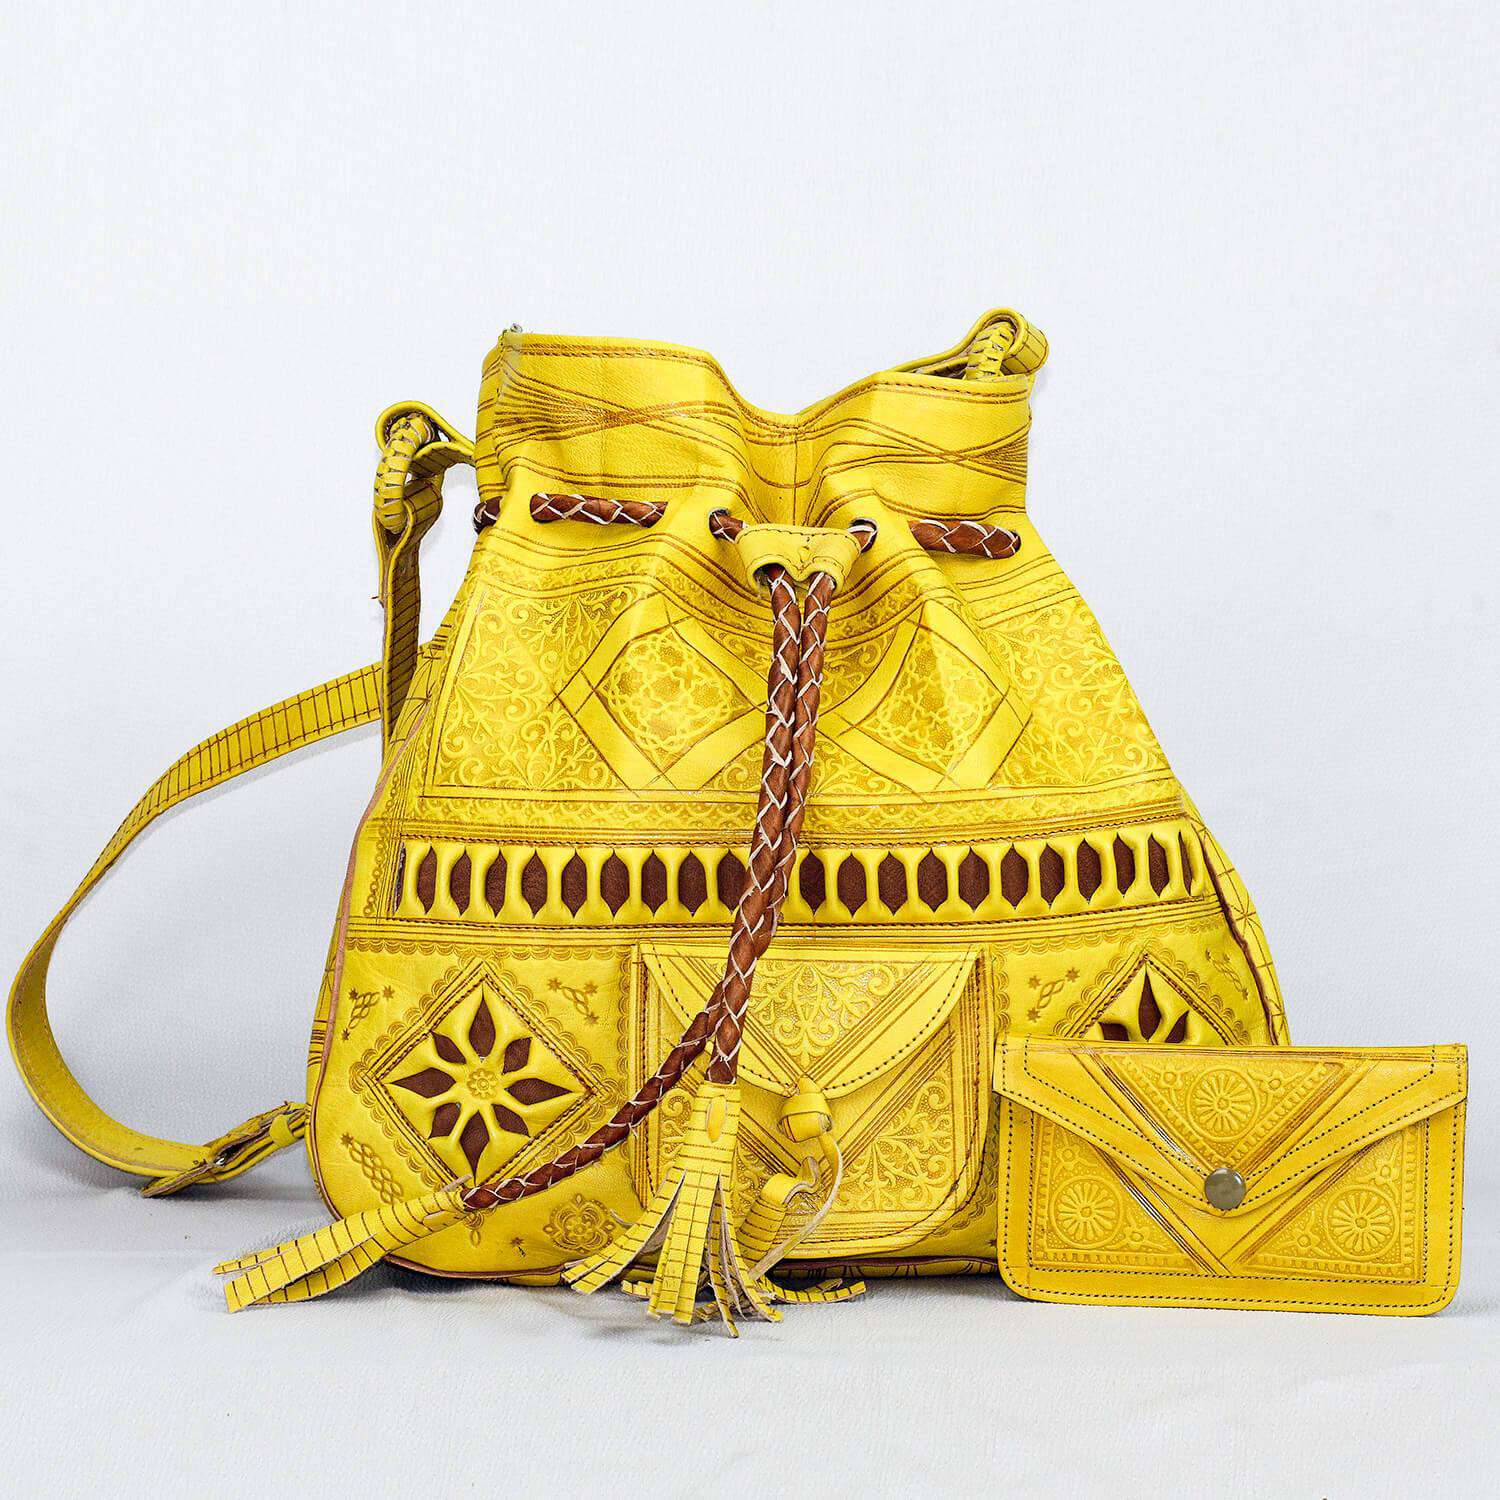 Moroccan Sunflower Bag Re-invented